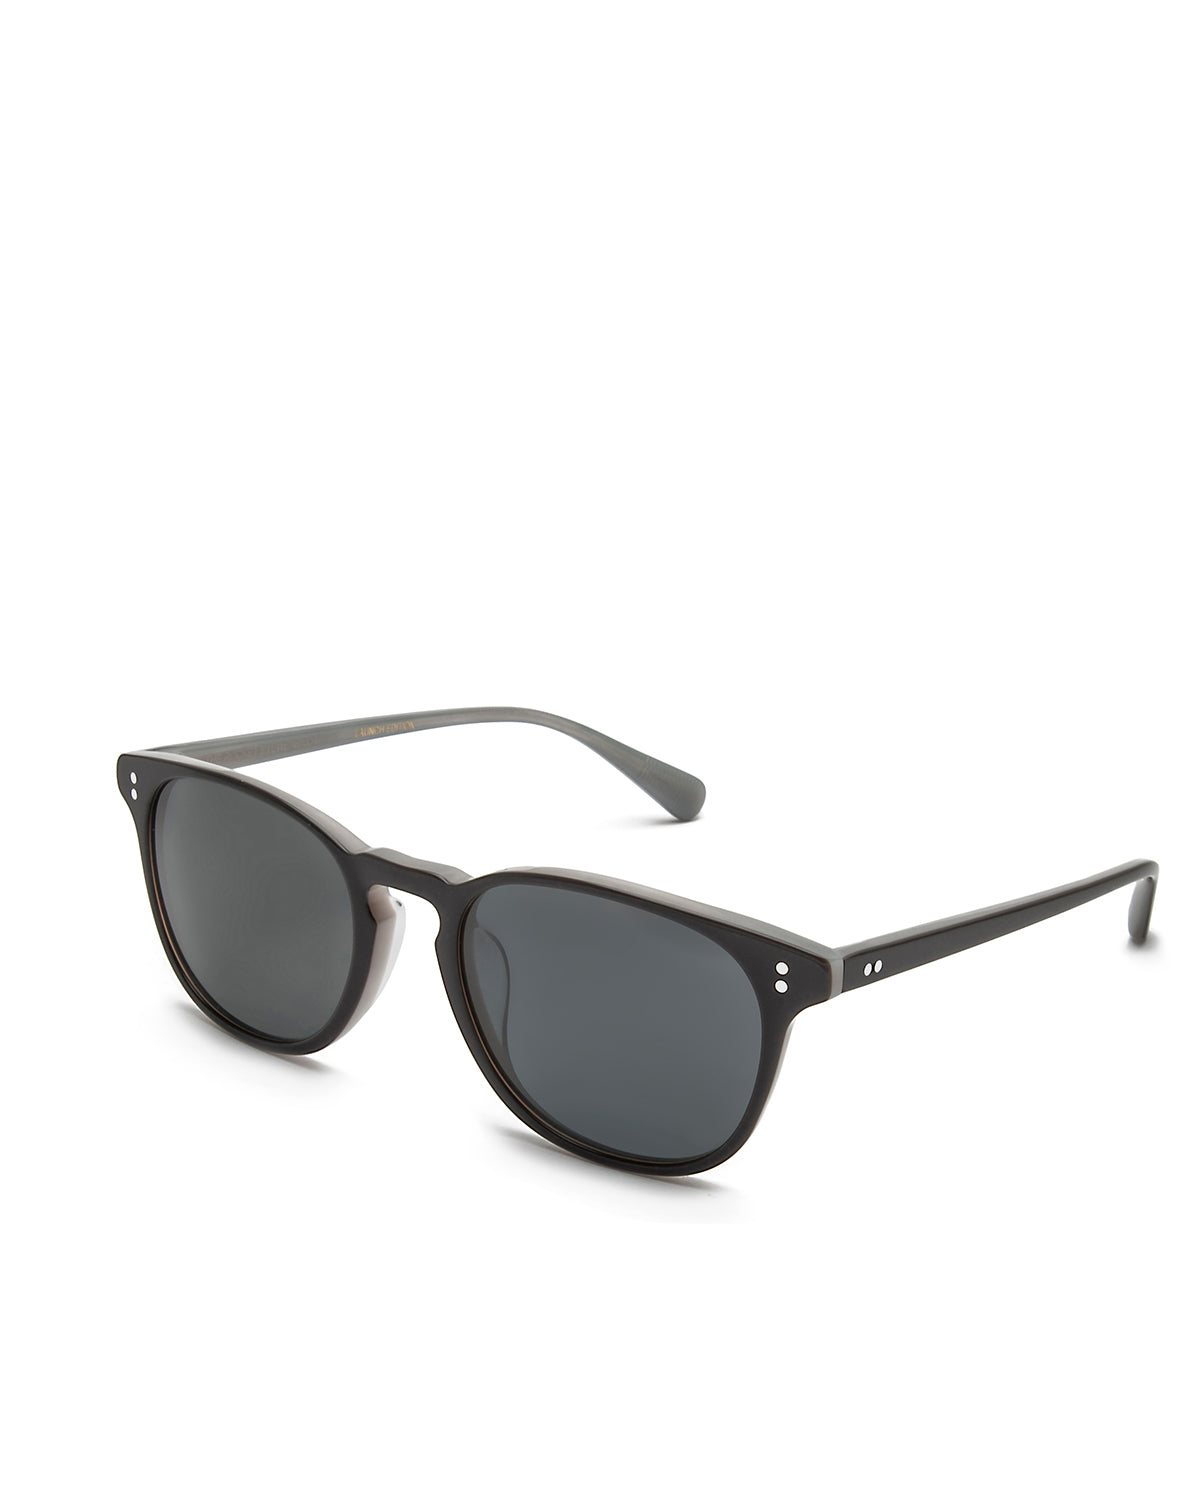 MTO P3 Classic Onyx/Gainsboro with Grey Polarised Lenses